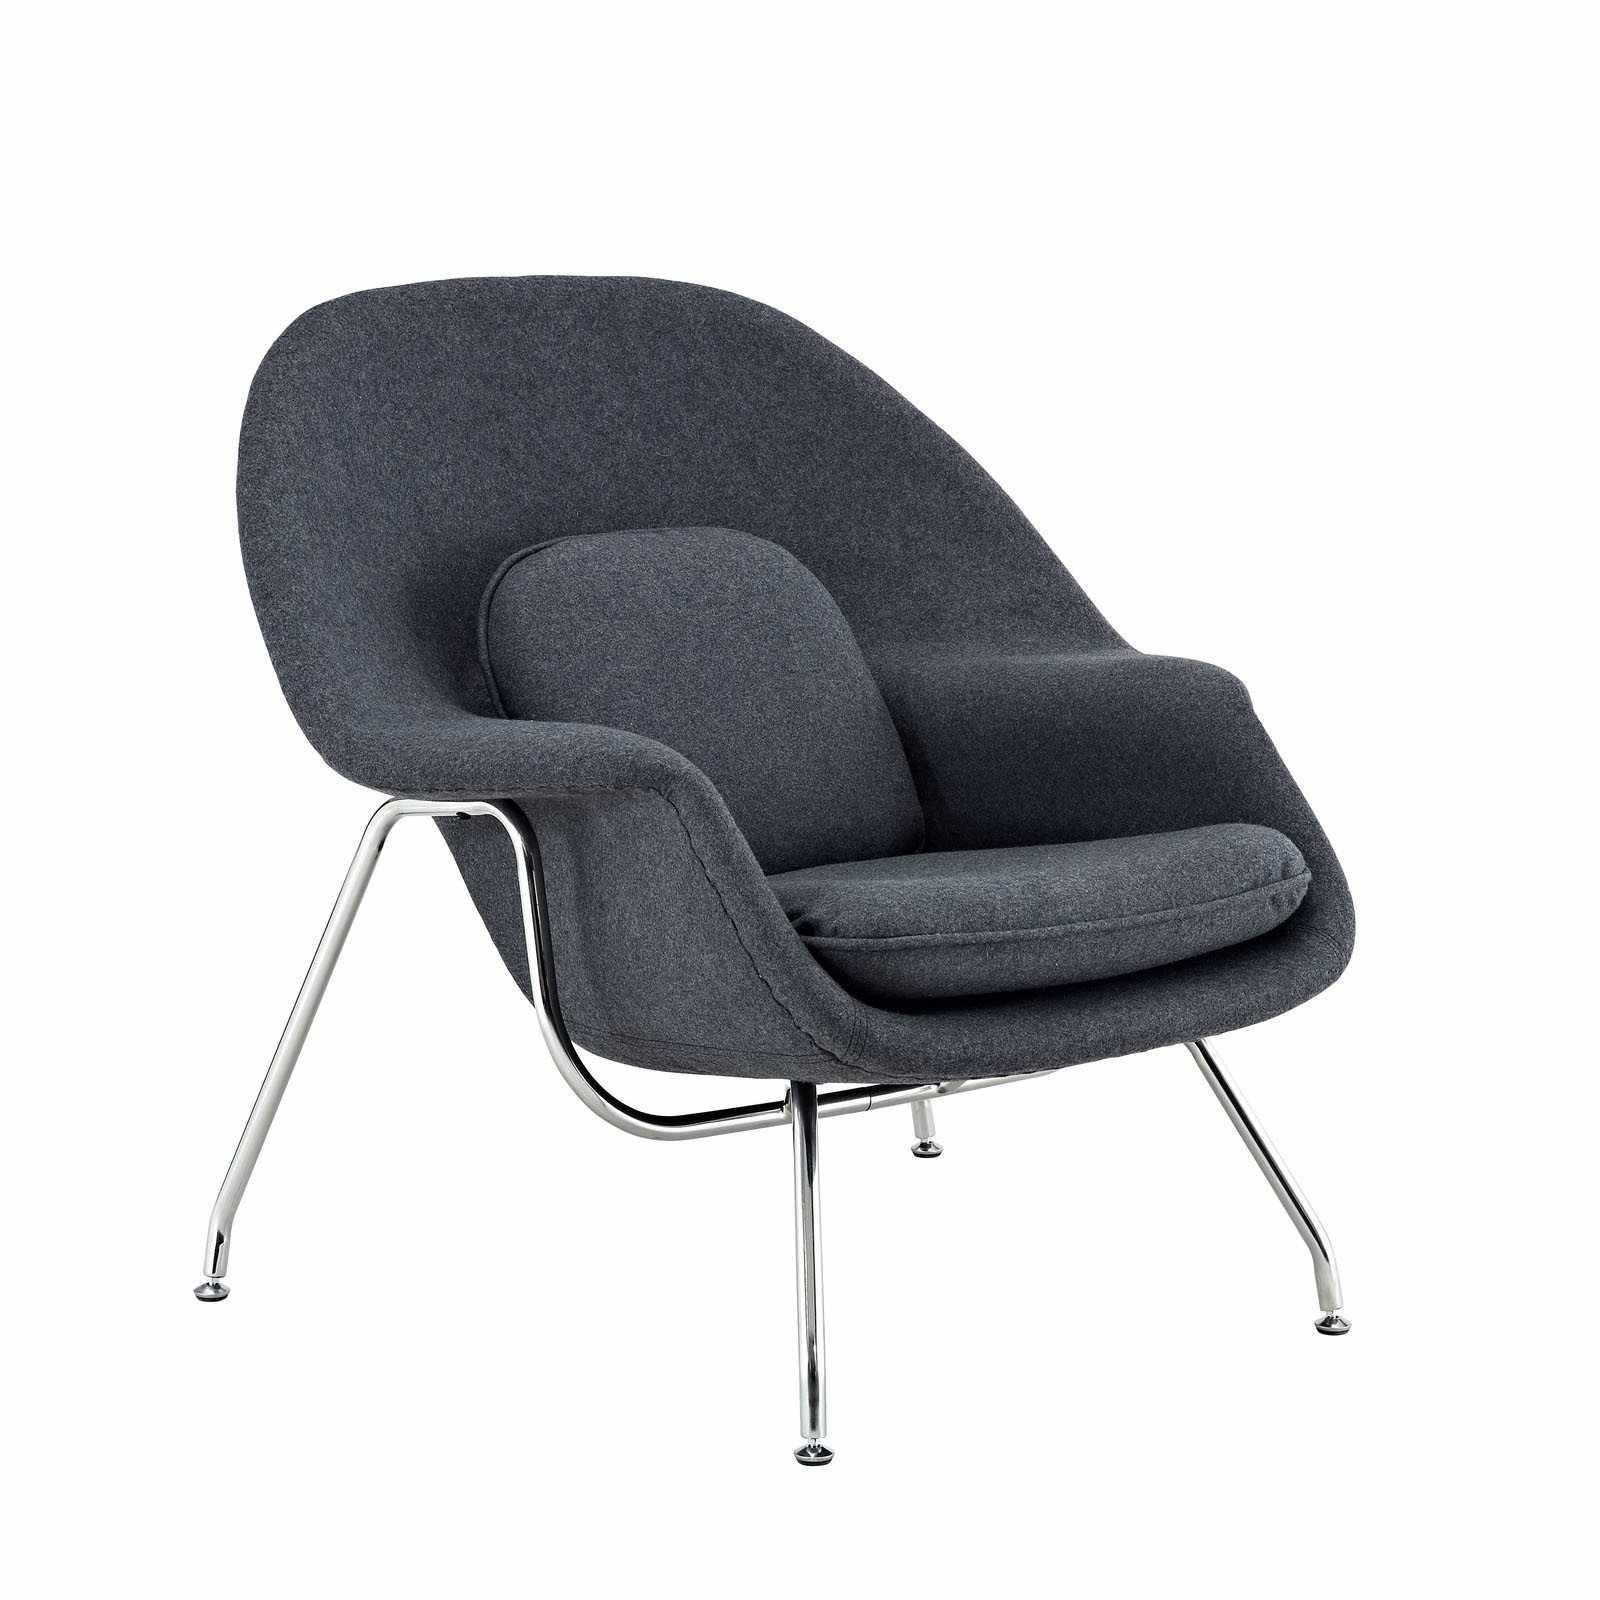 Womb Chair Amp Ottoman Replica Best Reproduction Emfurn